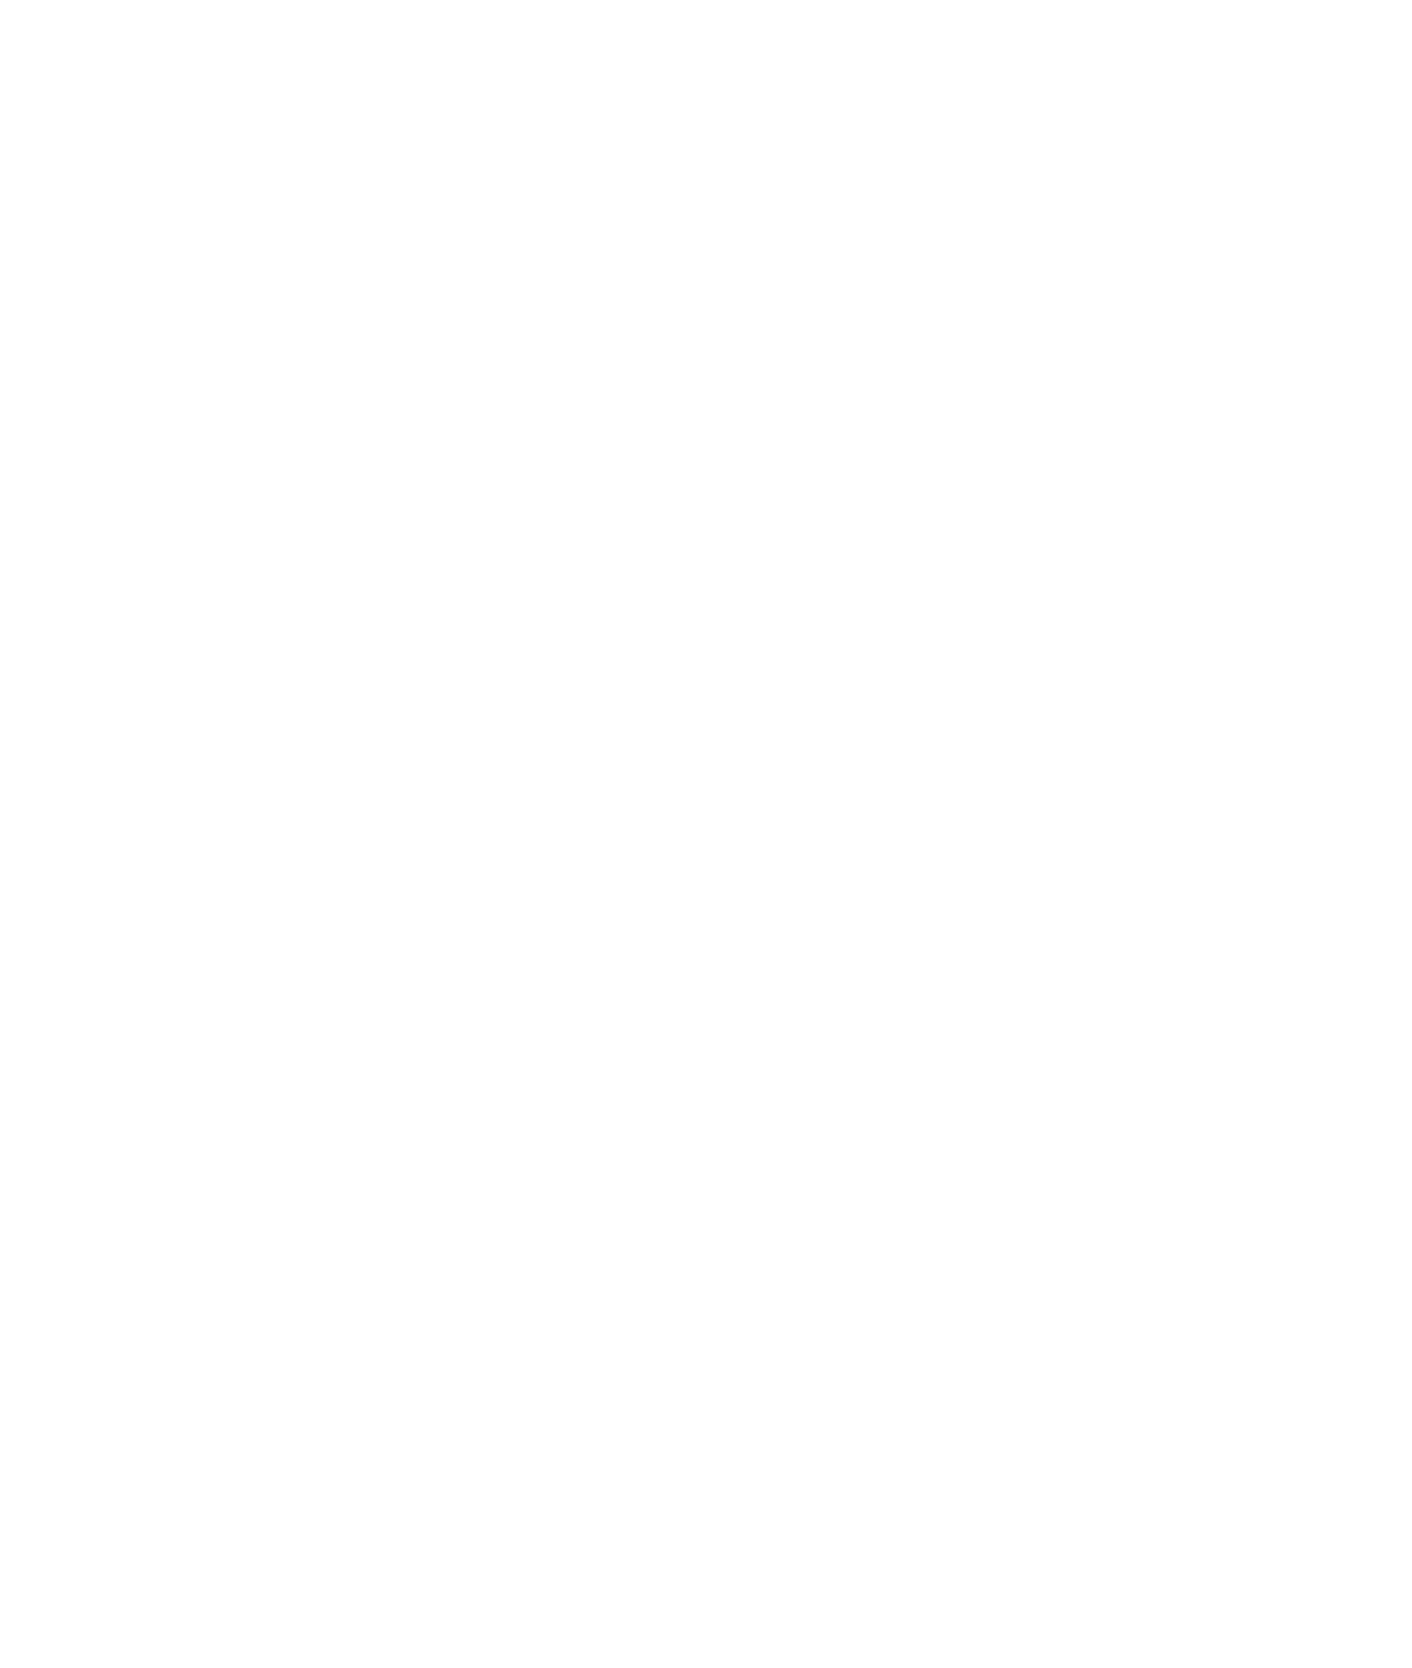 Blackbush Armory